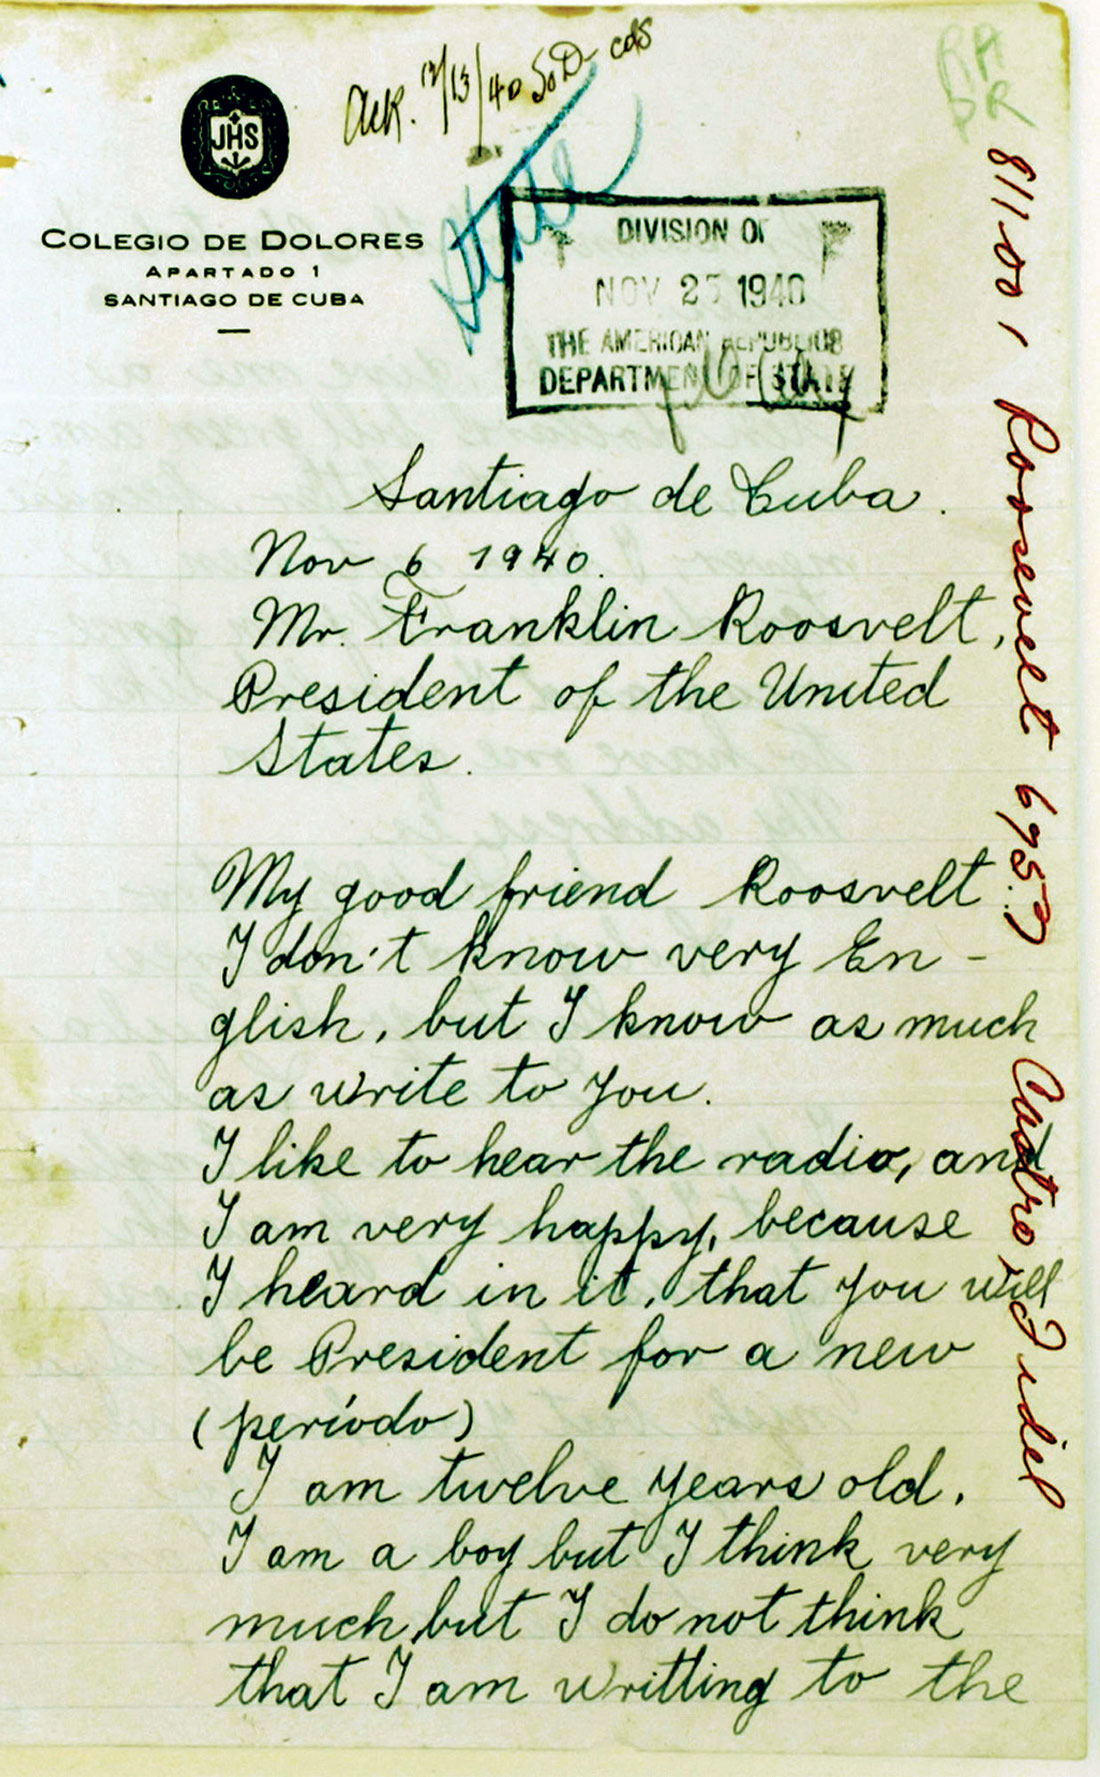 The first page of Castro's letter, 6 November 1940.